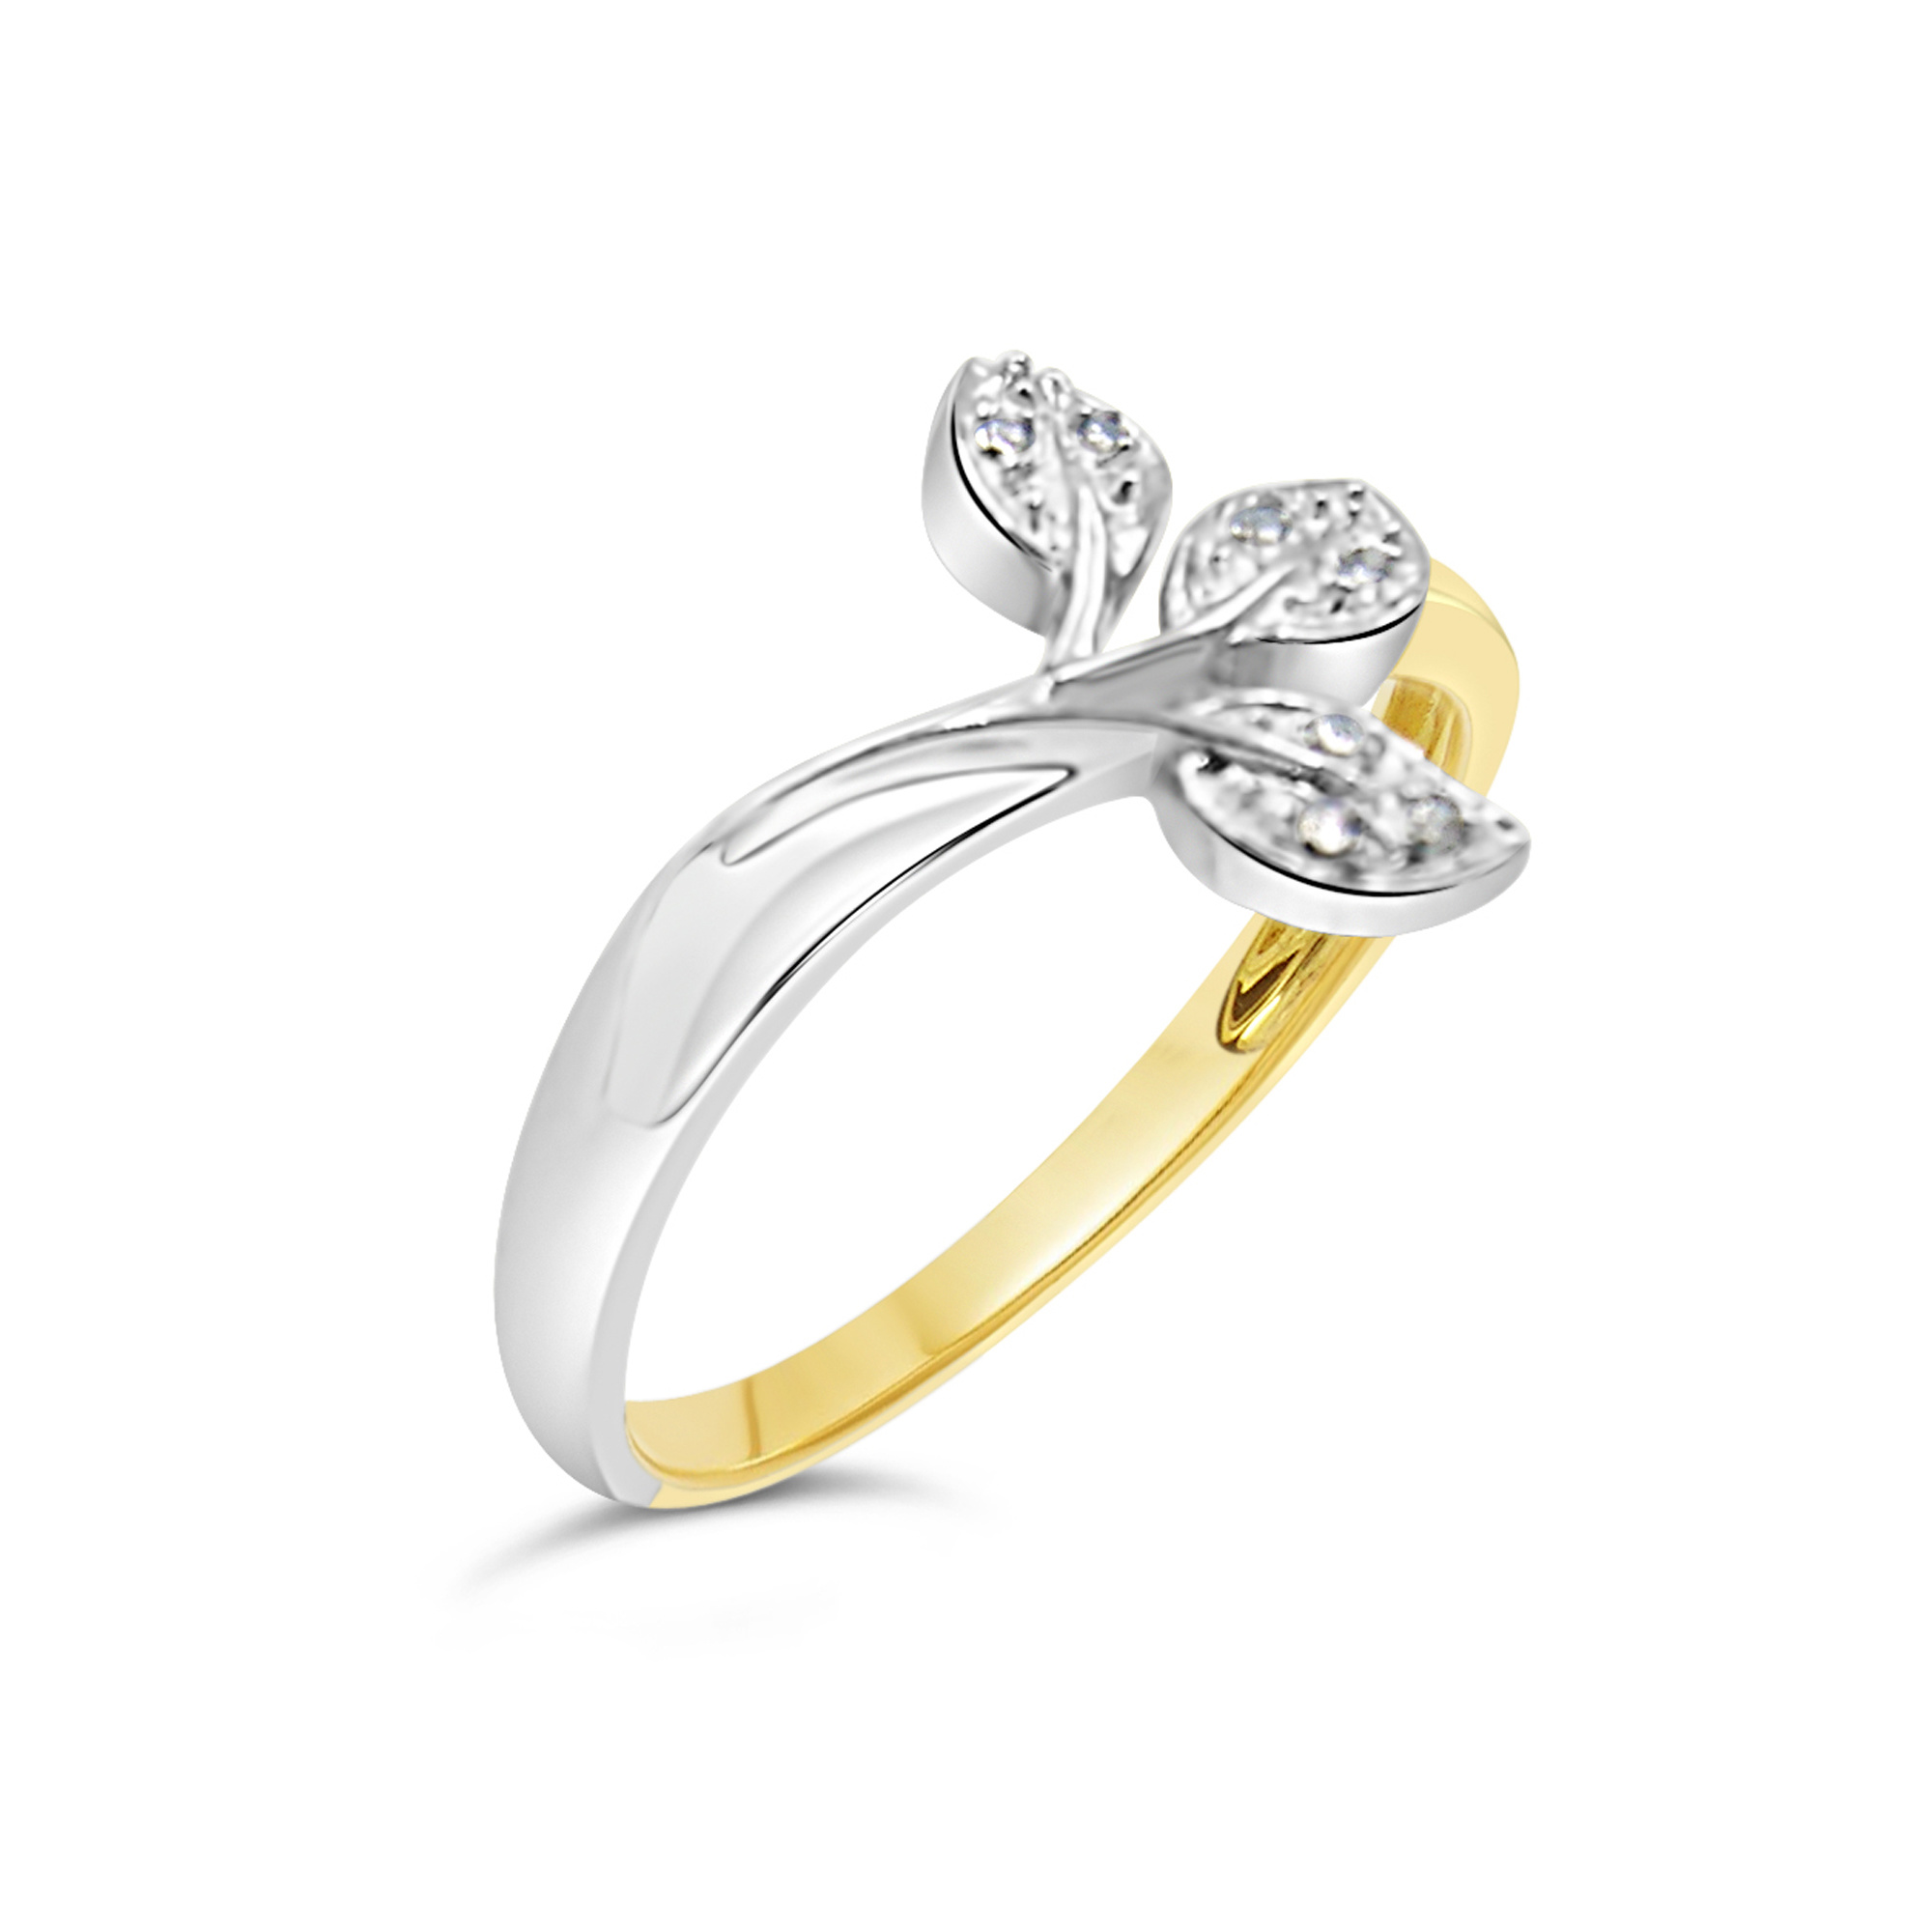 18kt white and yellow gold leaf ring with 0.02 CT diamonds